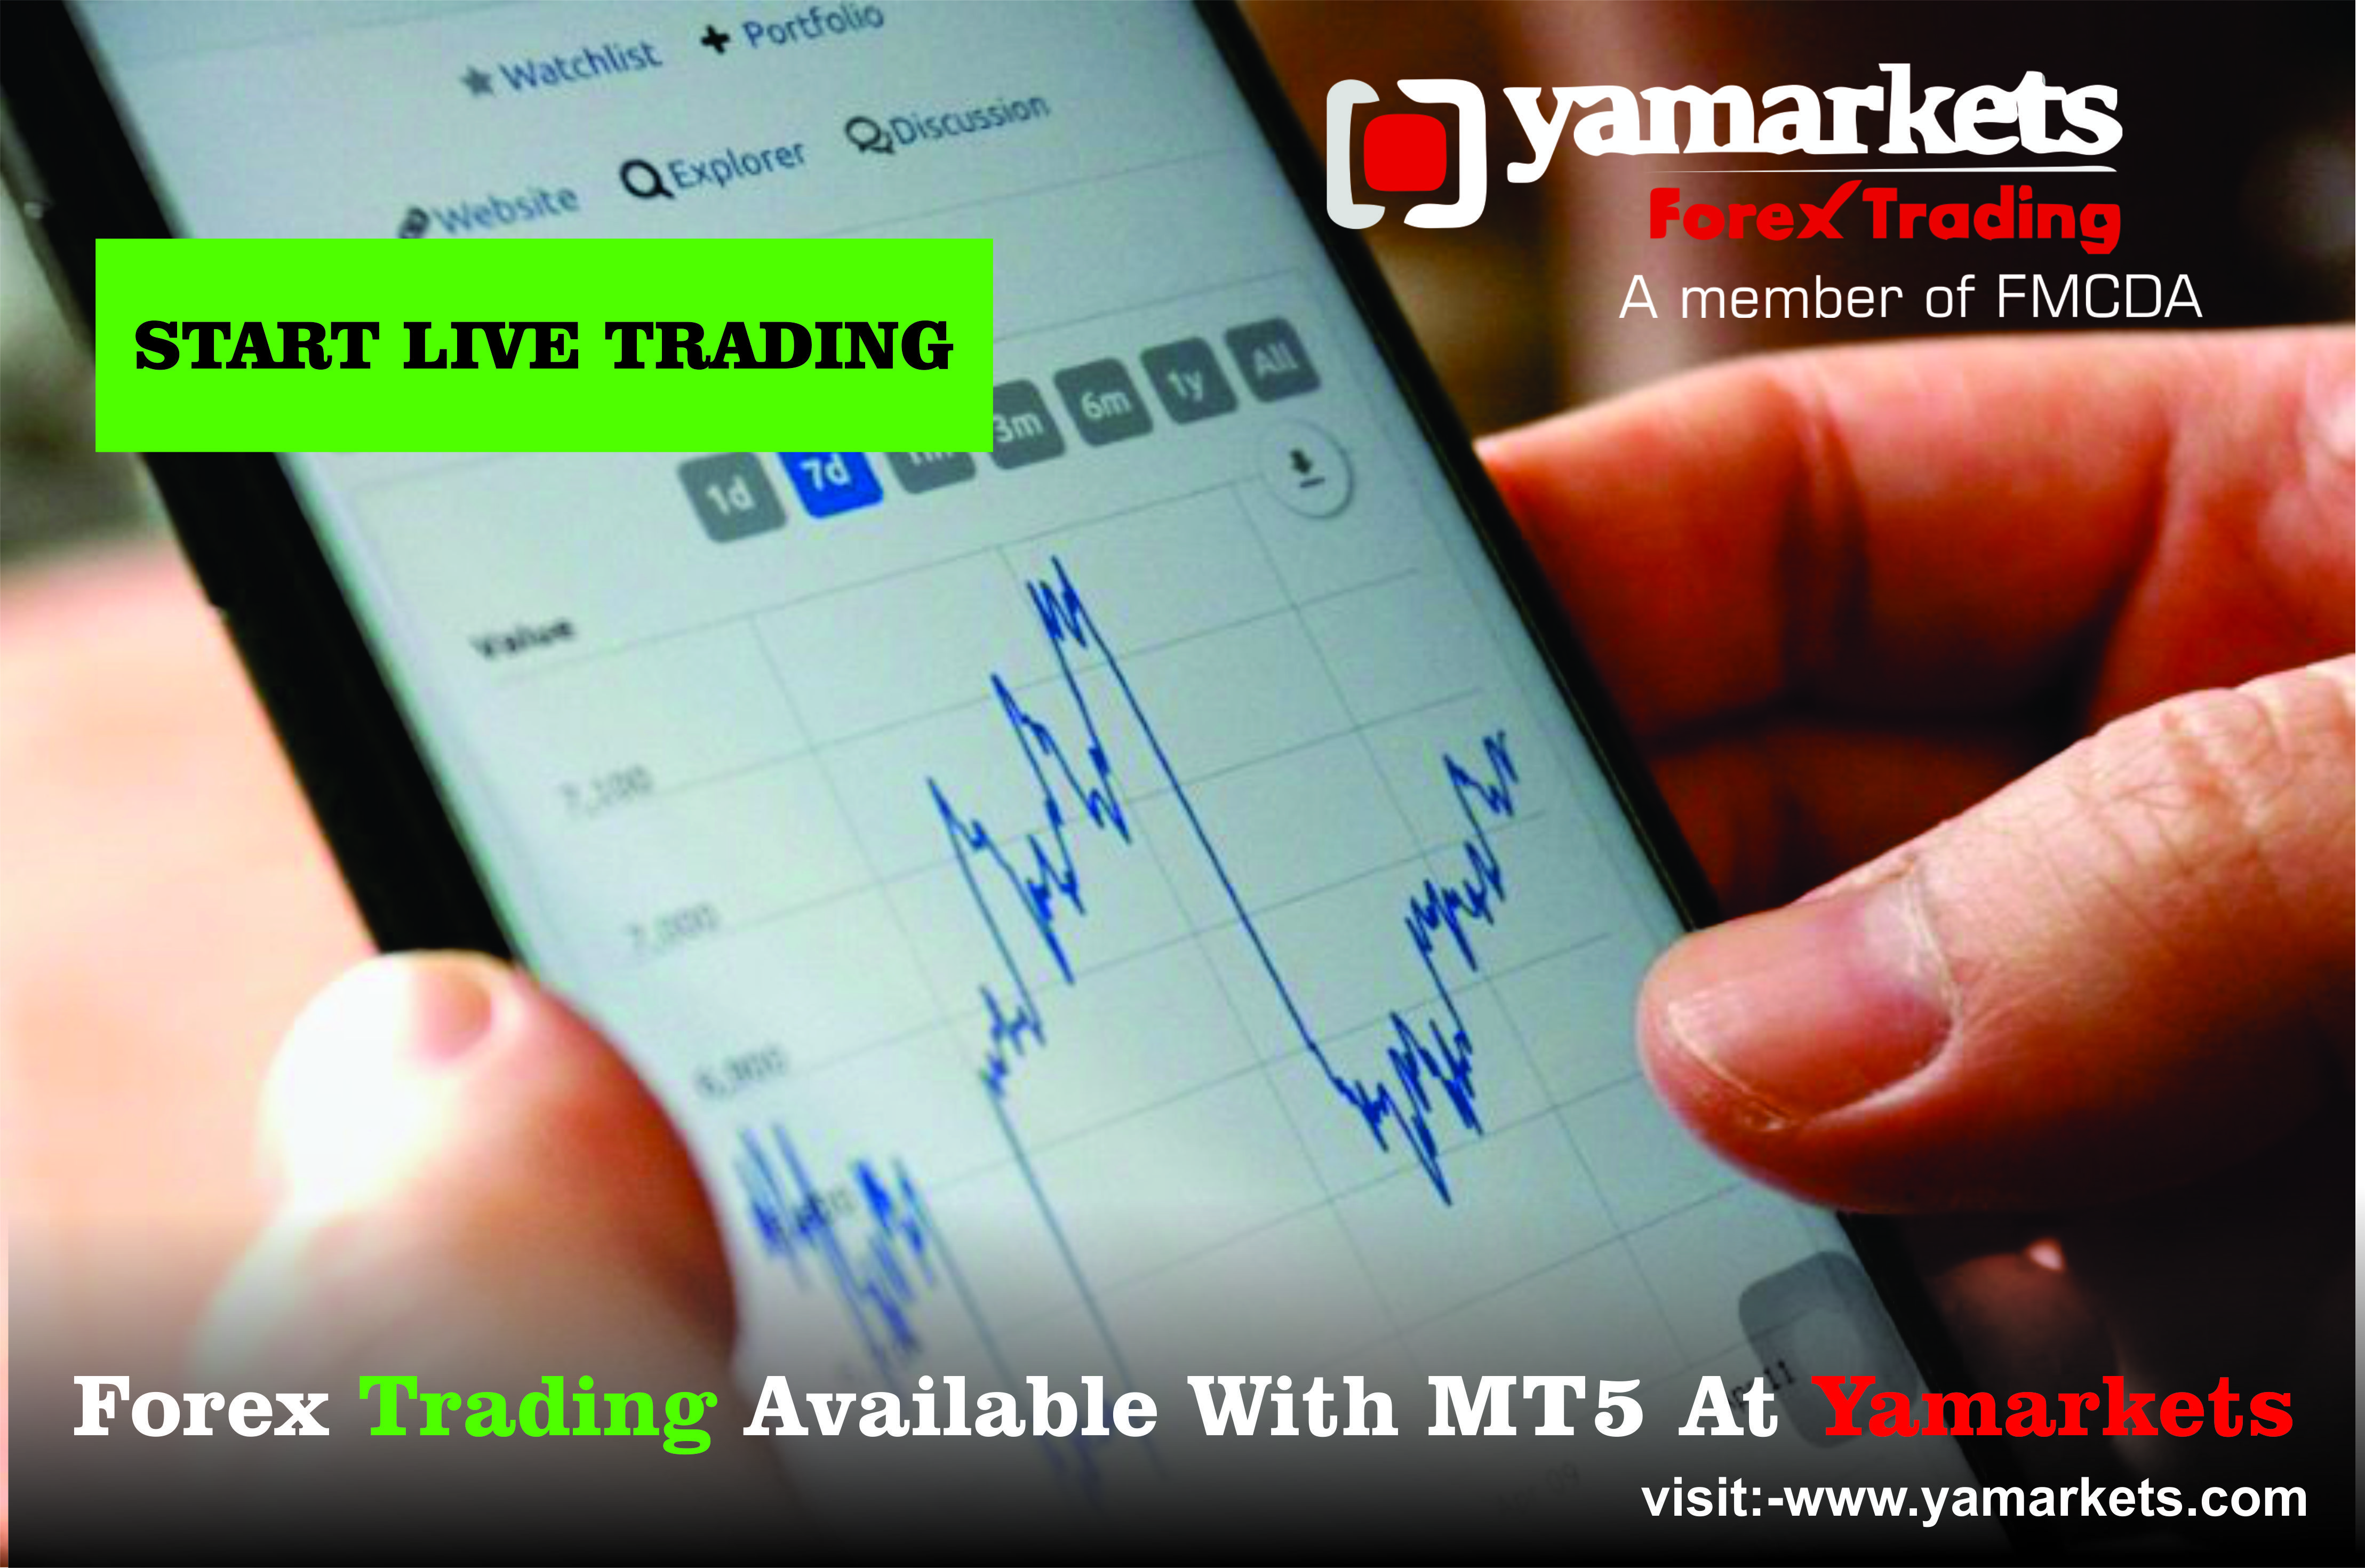 Forex Trading Available With Mt5 At Yamarkets For More Info Visit